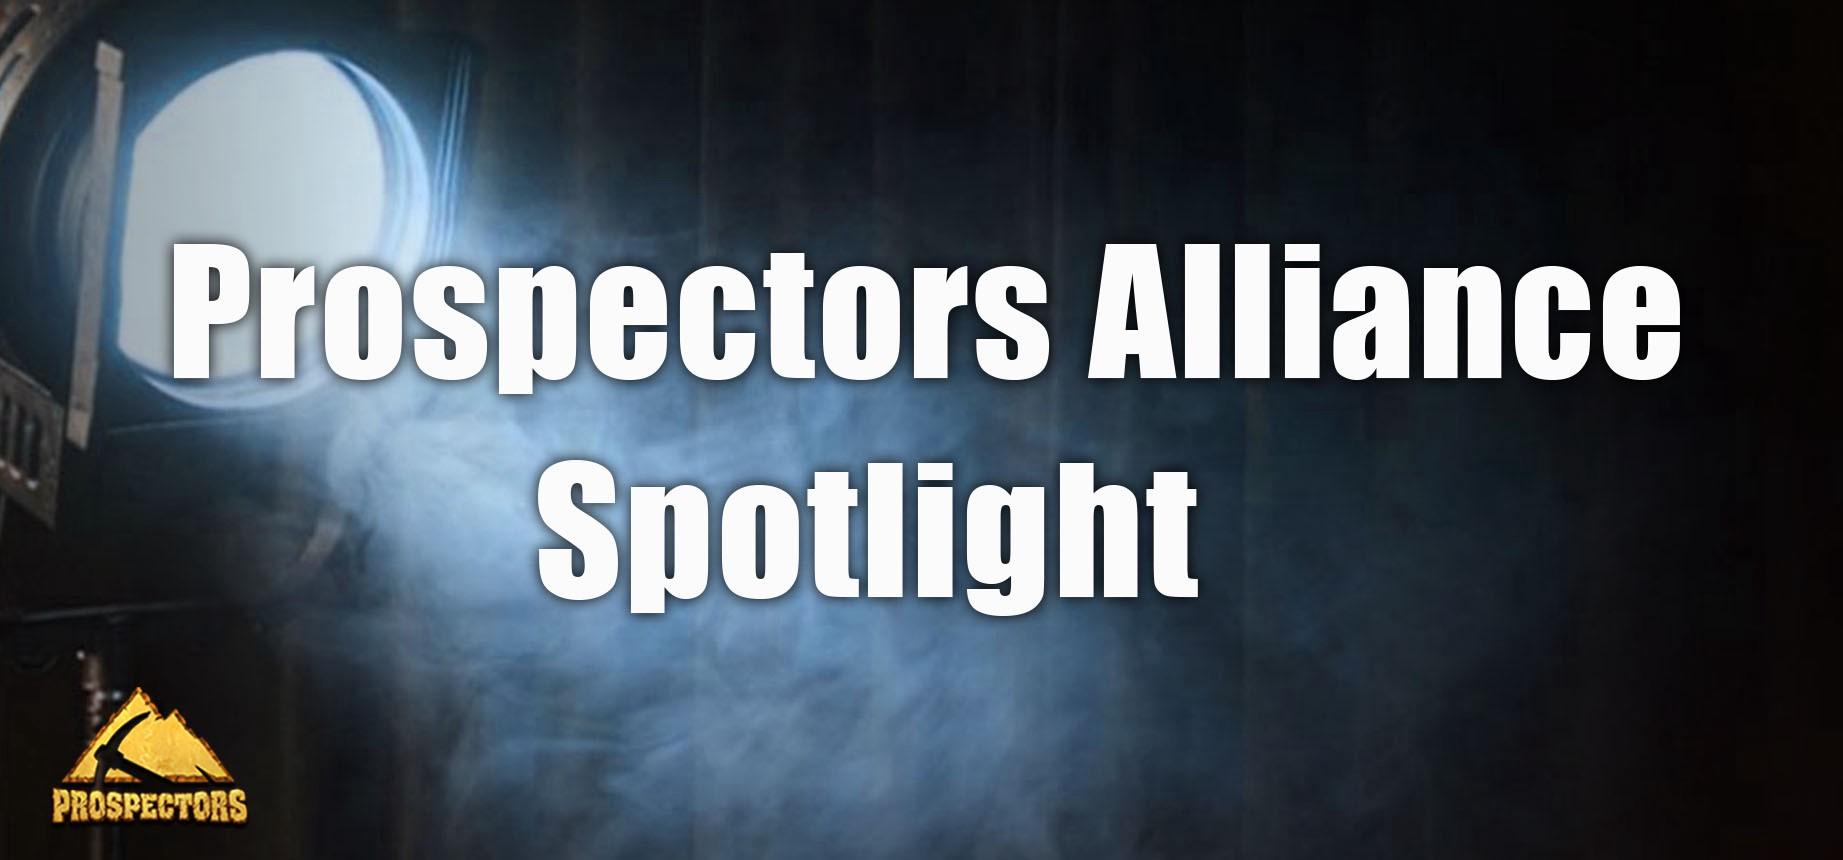 Prospectors Alliance spotlight: 1PLANET ALLIANCE